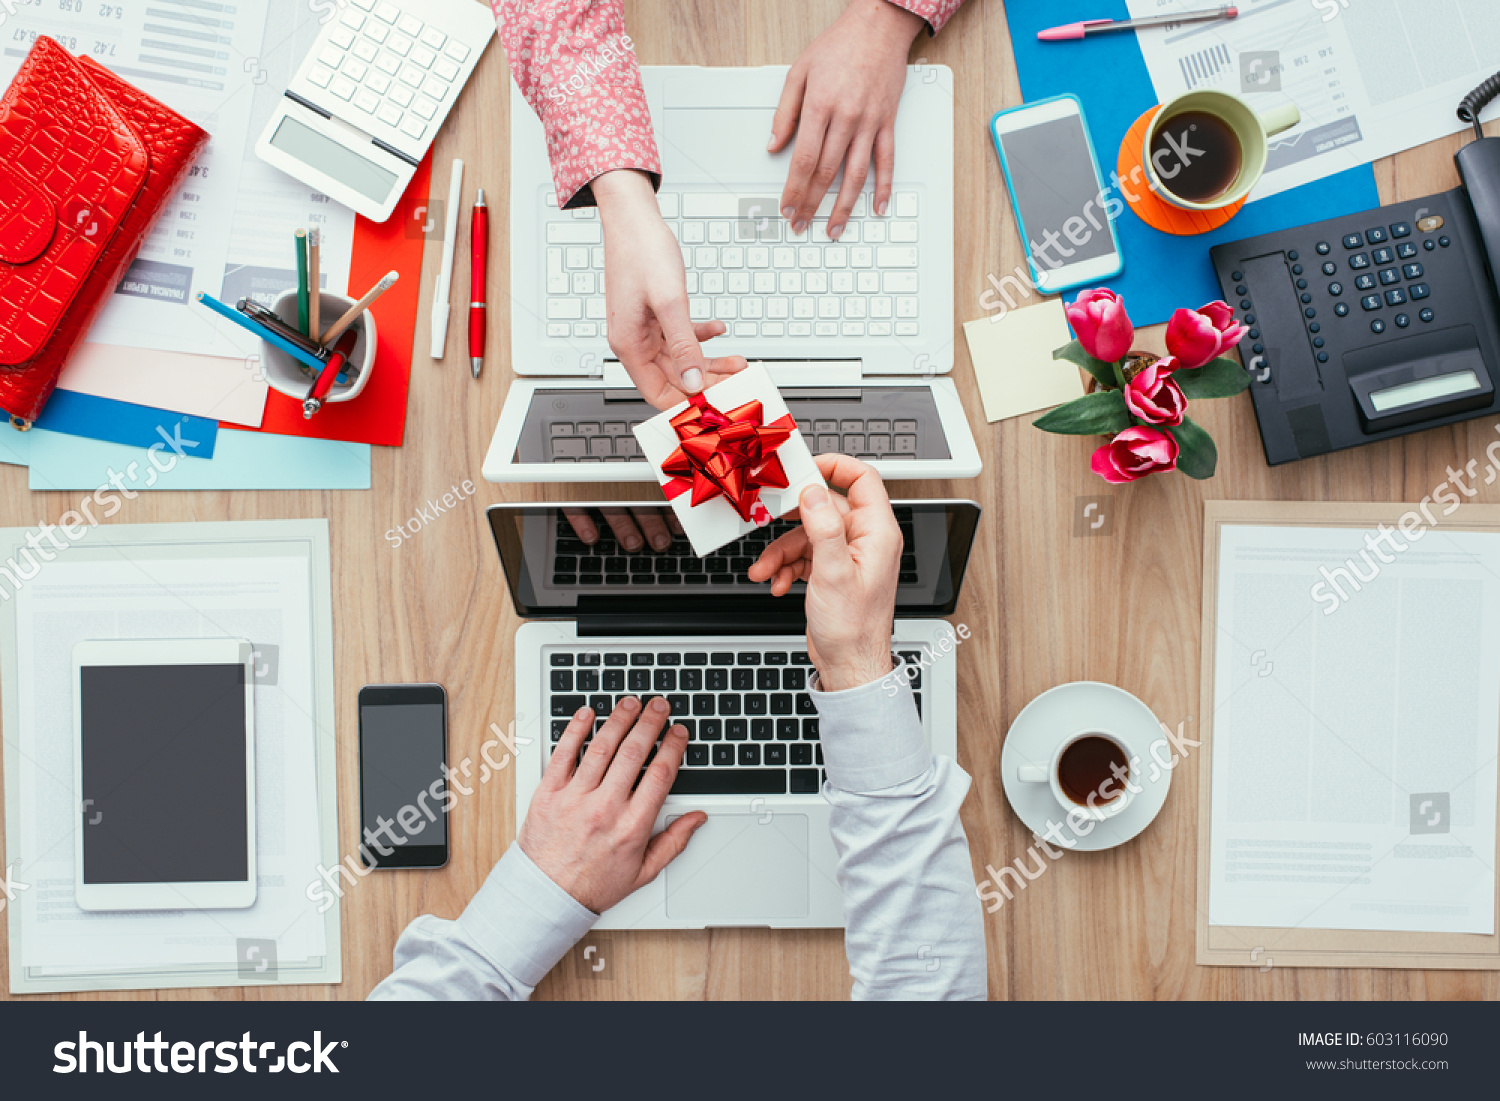 Woman Receiving A Beautiful Gift From Her Male Colleague While Working In  The Office; Relationships